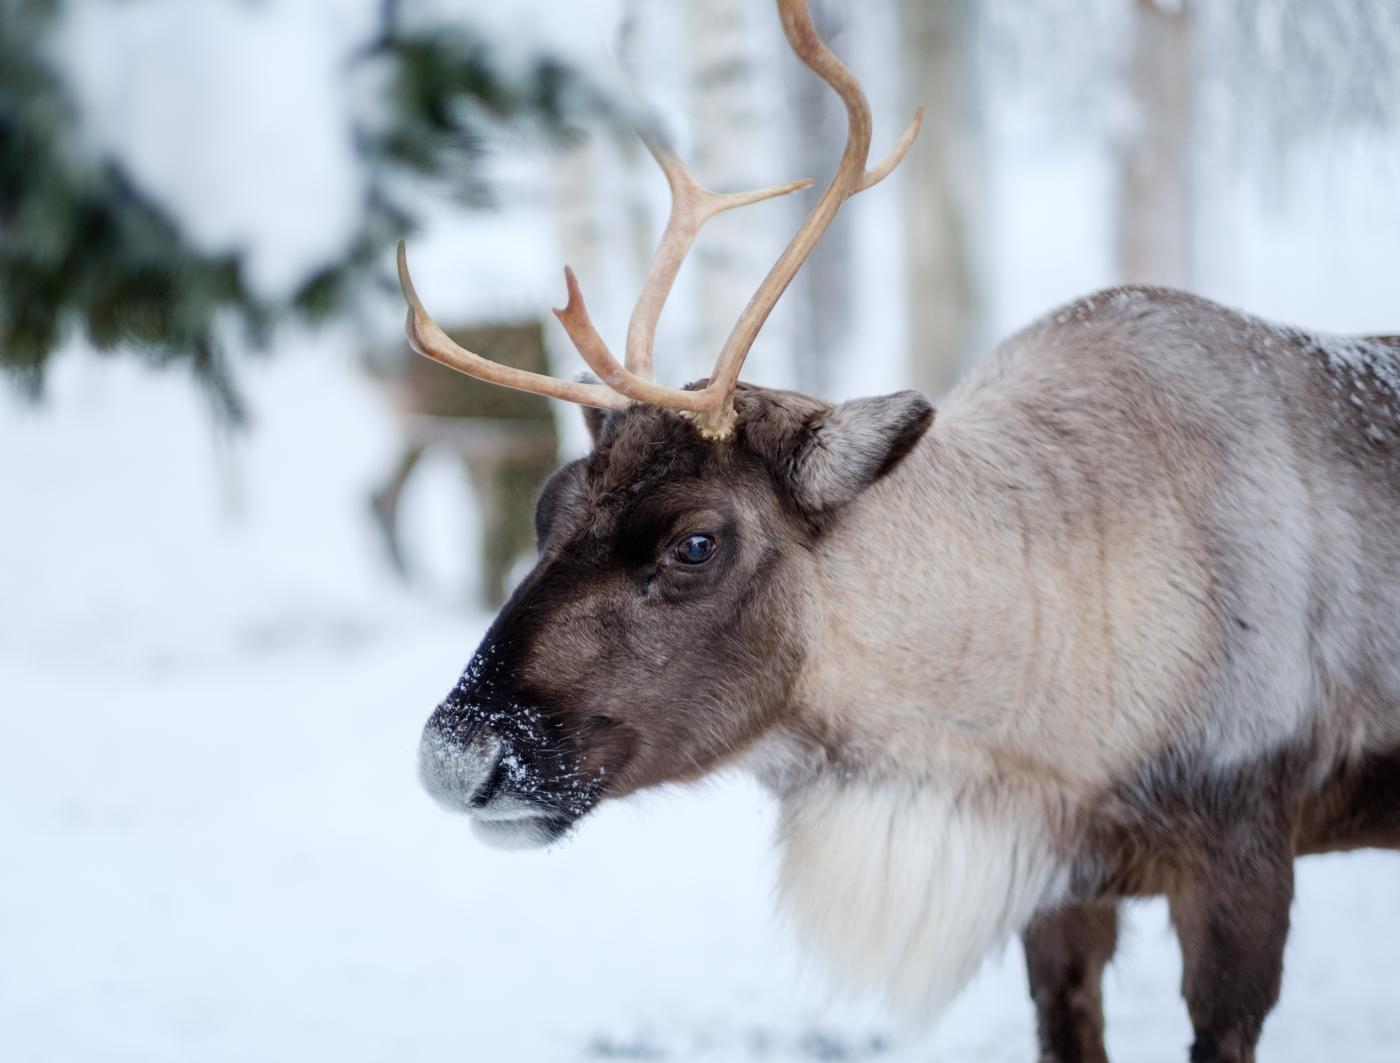 Meet the Reindeer